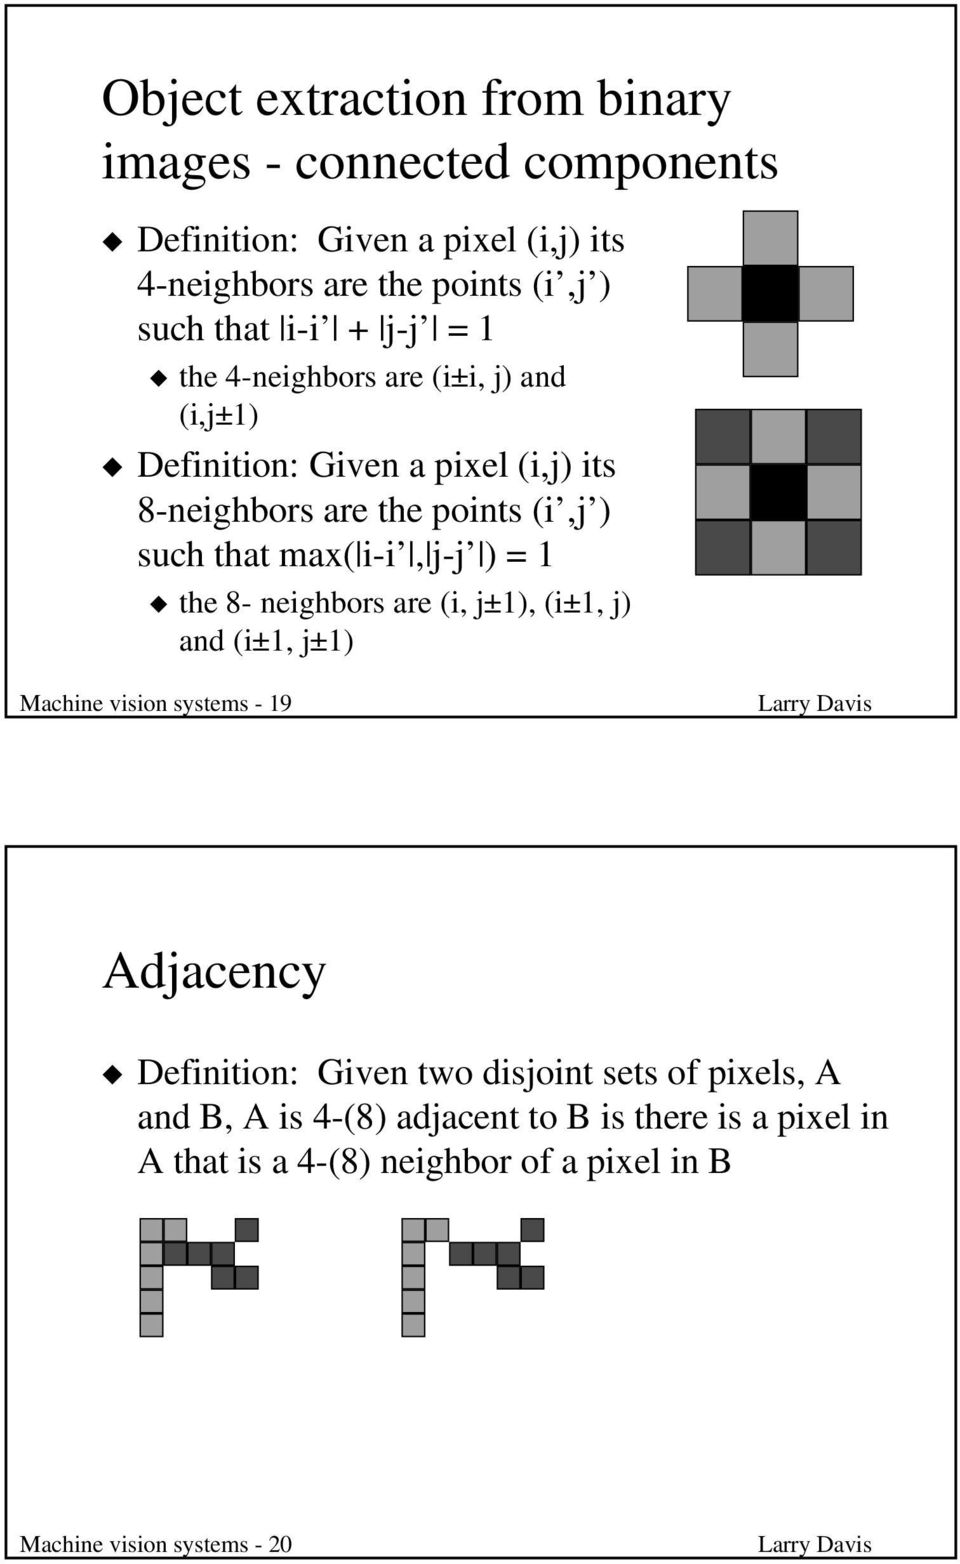 i-i, j-j ) = 1 the 8- neighbors are (i, j±1), (i±1, j) and (i±1, j±1) Machine vision systems - 19 Adjacency Definition: Given two disjoint